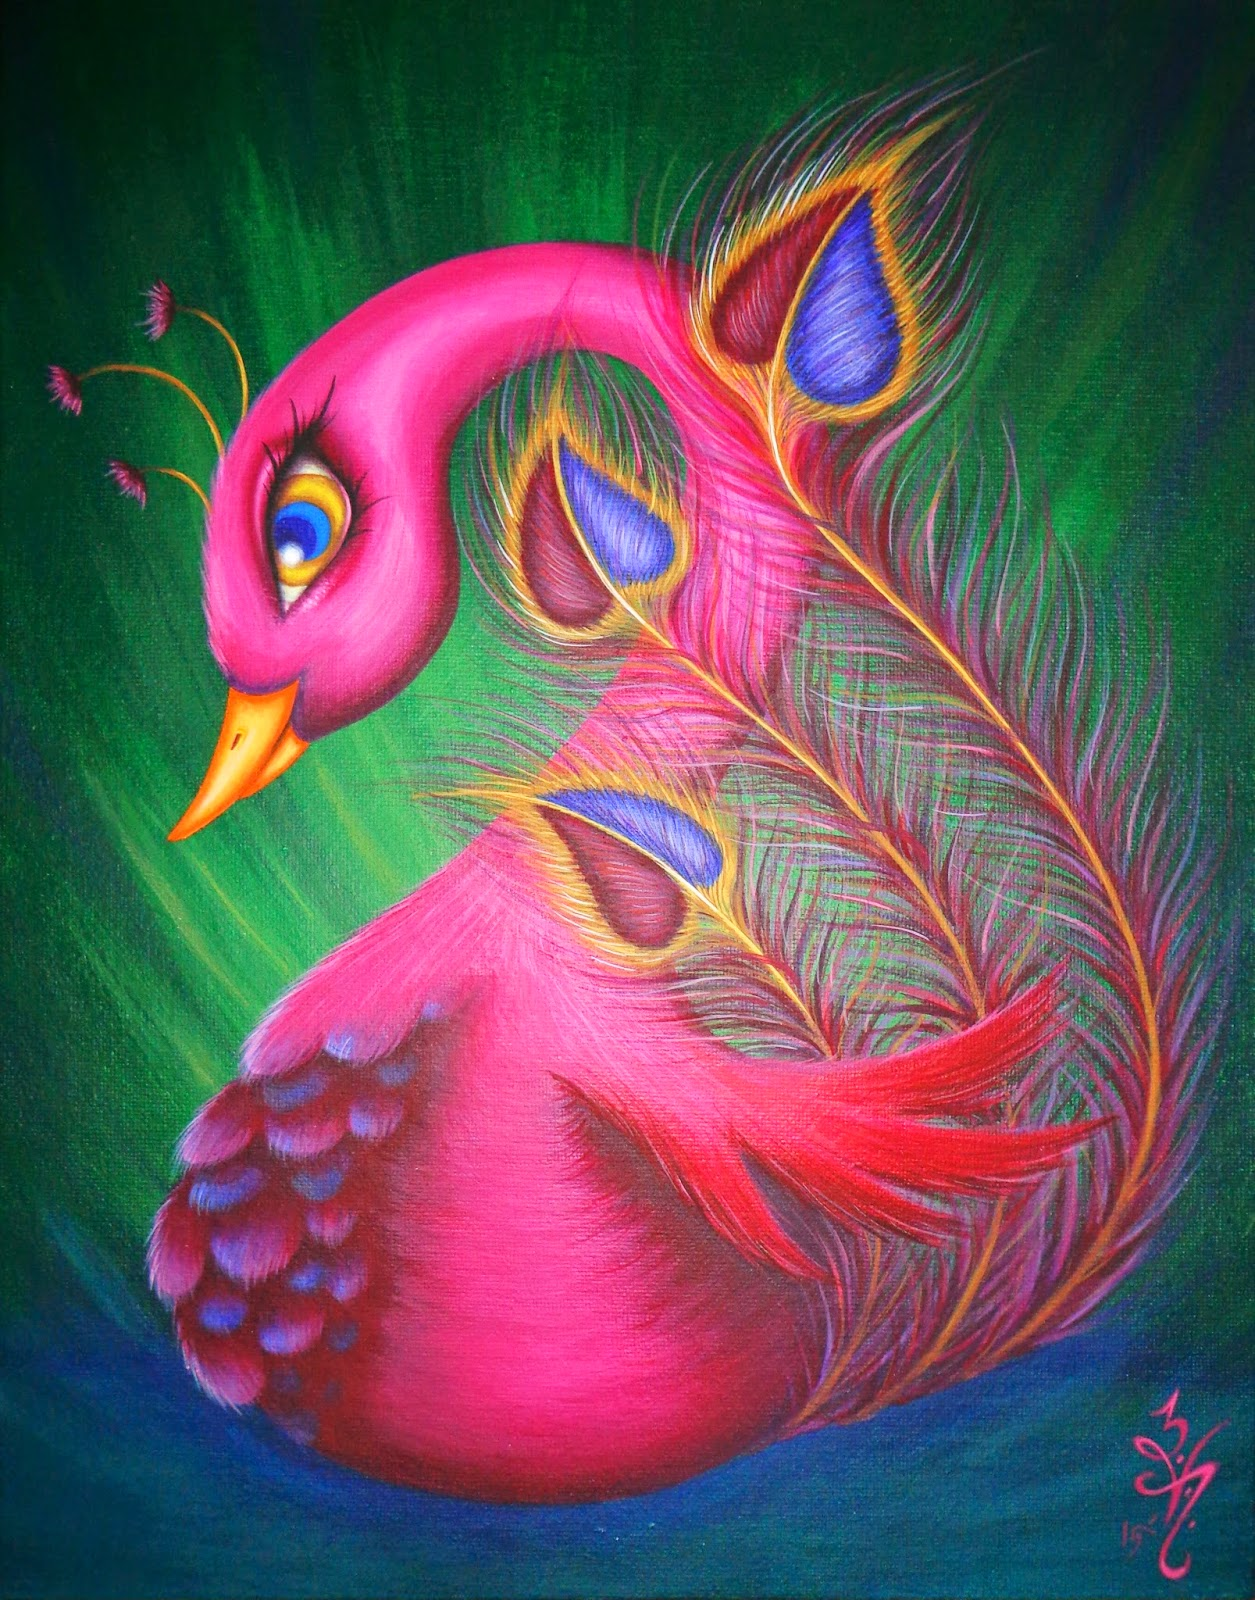 https://www.etsy.com/listing/222157424/original-fantasy-lowbrow-big-eye-peacock